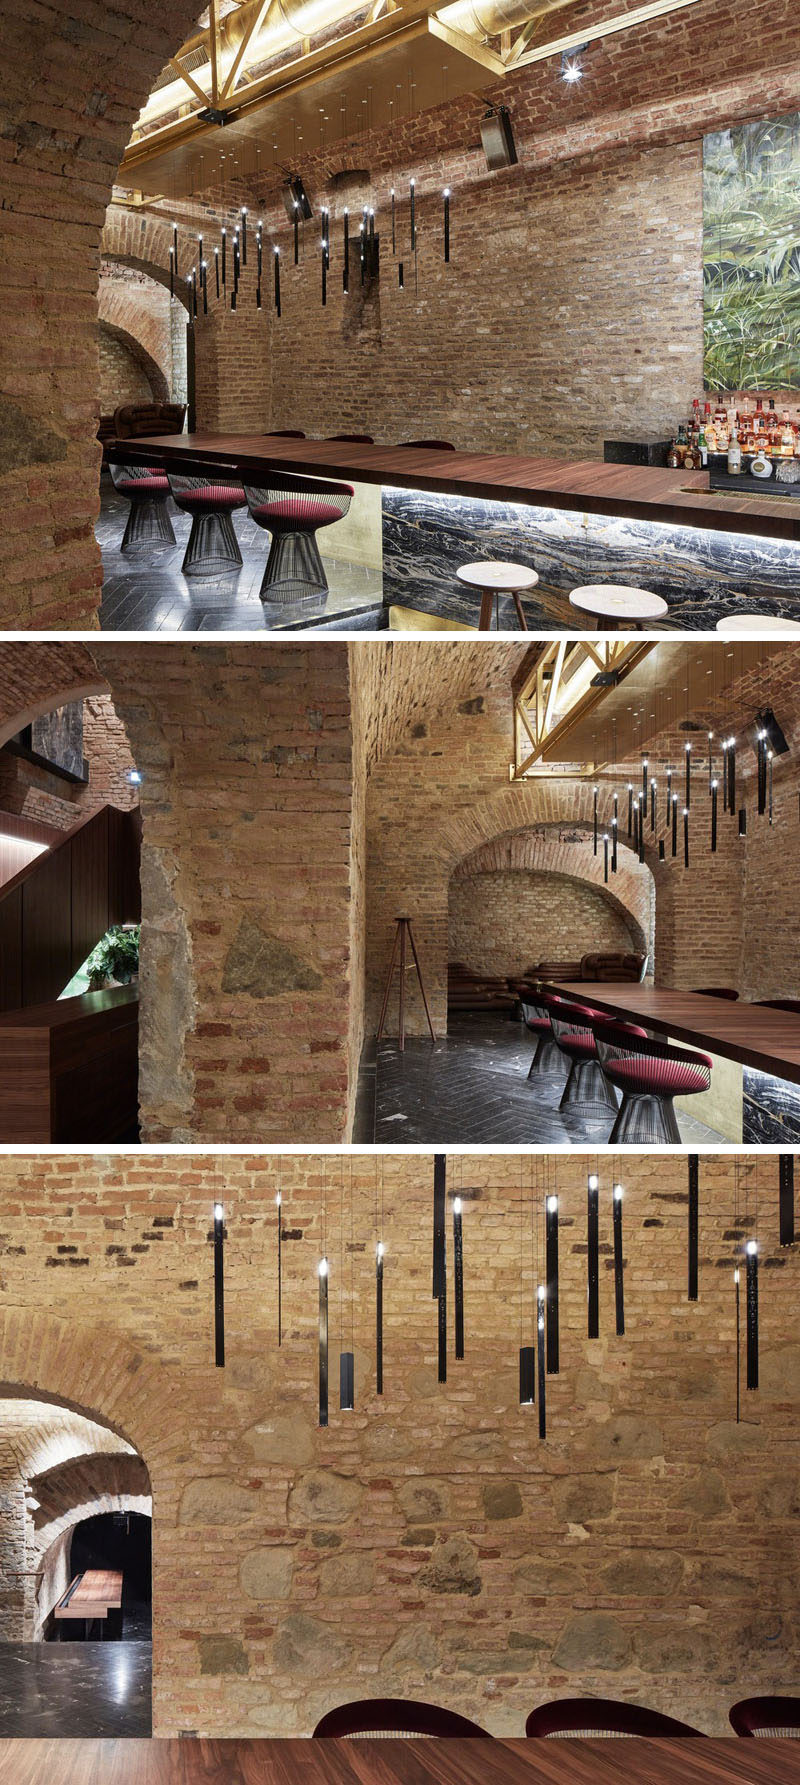 Büro KLK transformed an 18th century cellar in Vienna, Austria, into a contemporary underground cocktail bar. #CocktailBar #UndergroundBar